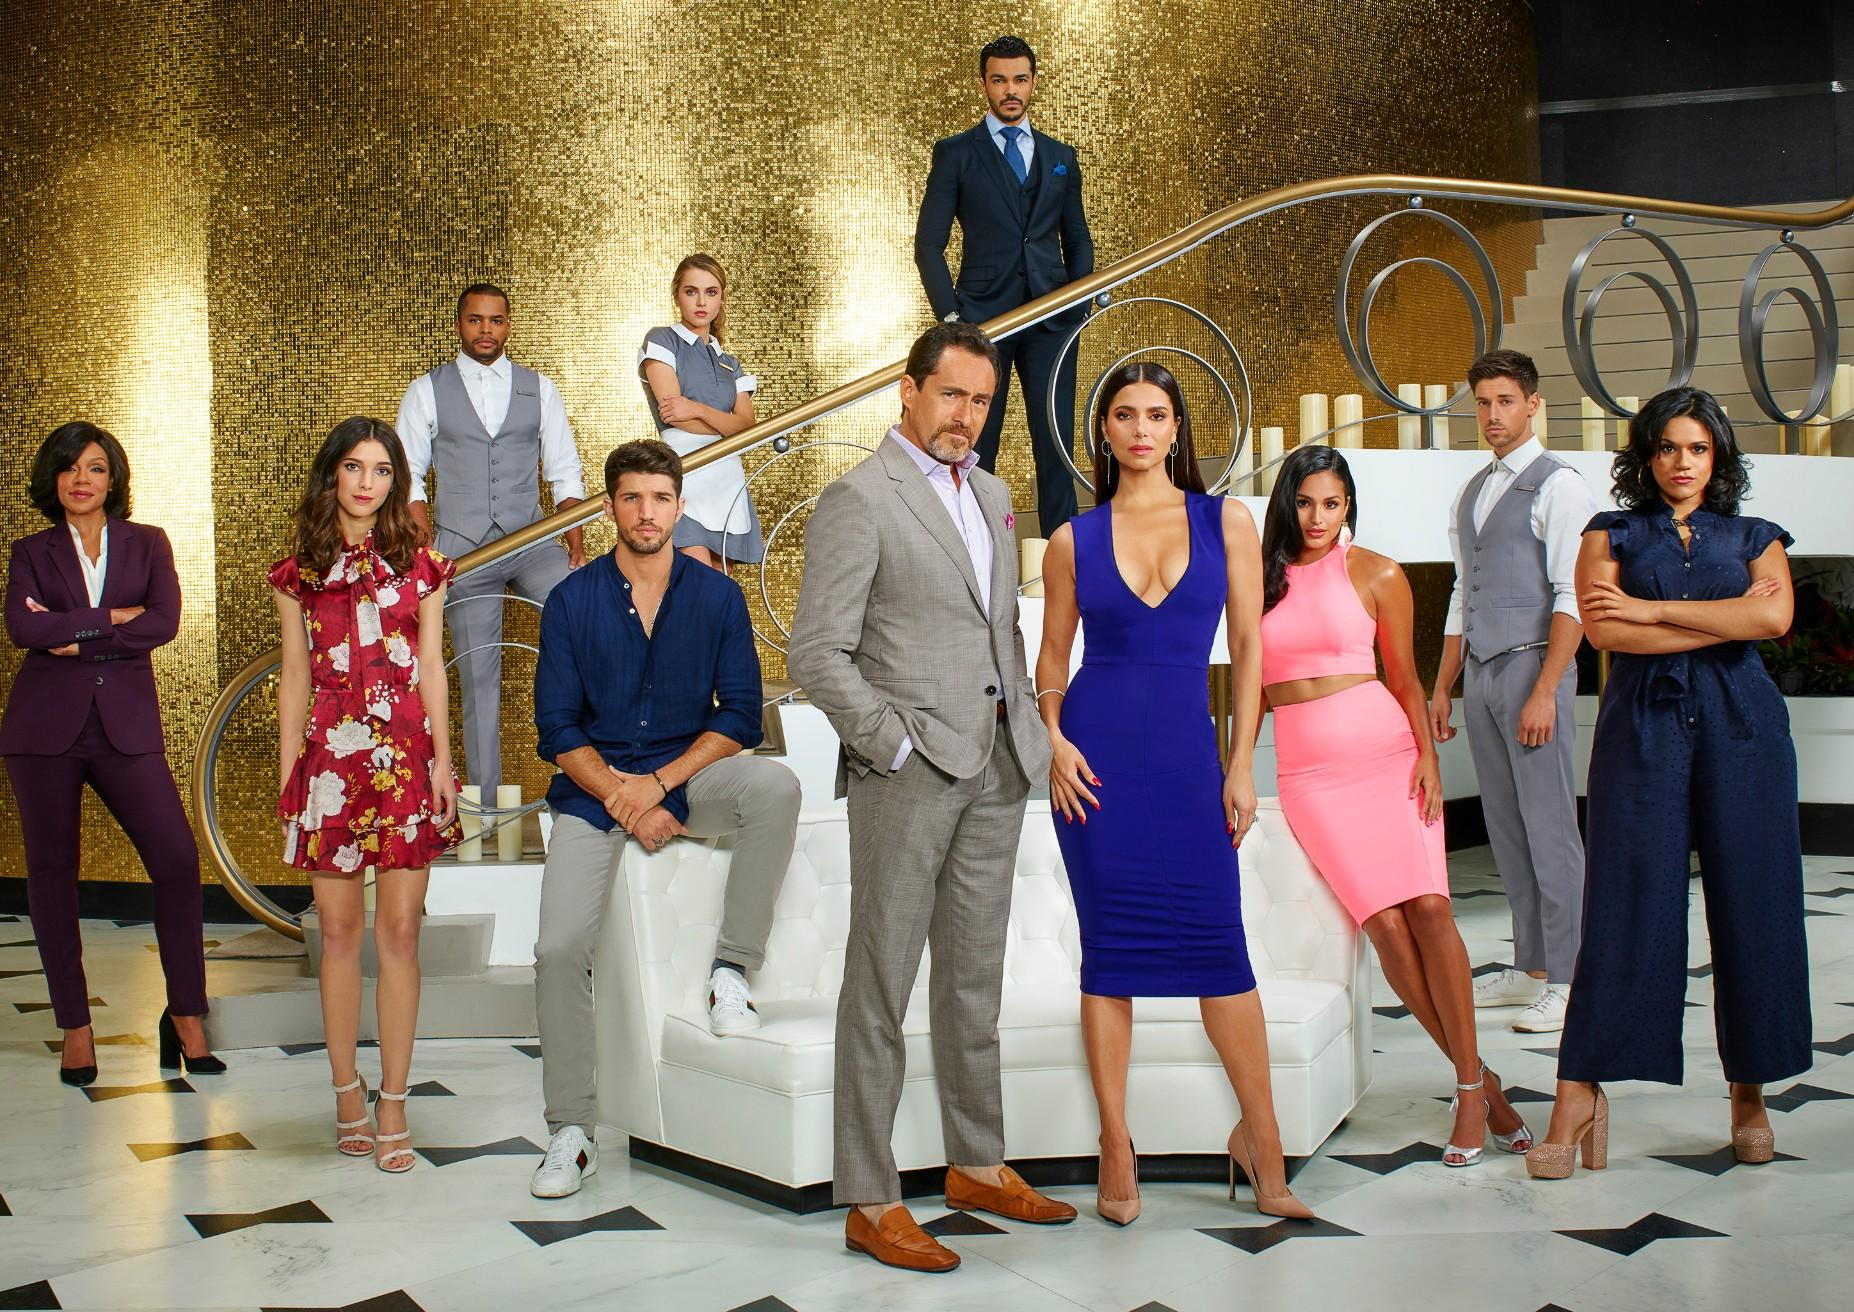 ABC's 'Grand Hotel' Series Premiere: How You Know The Cast